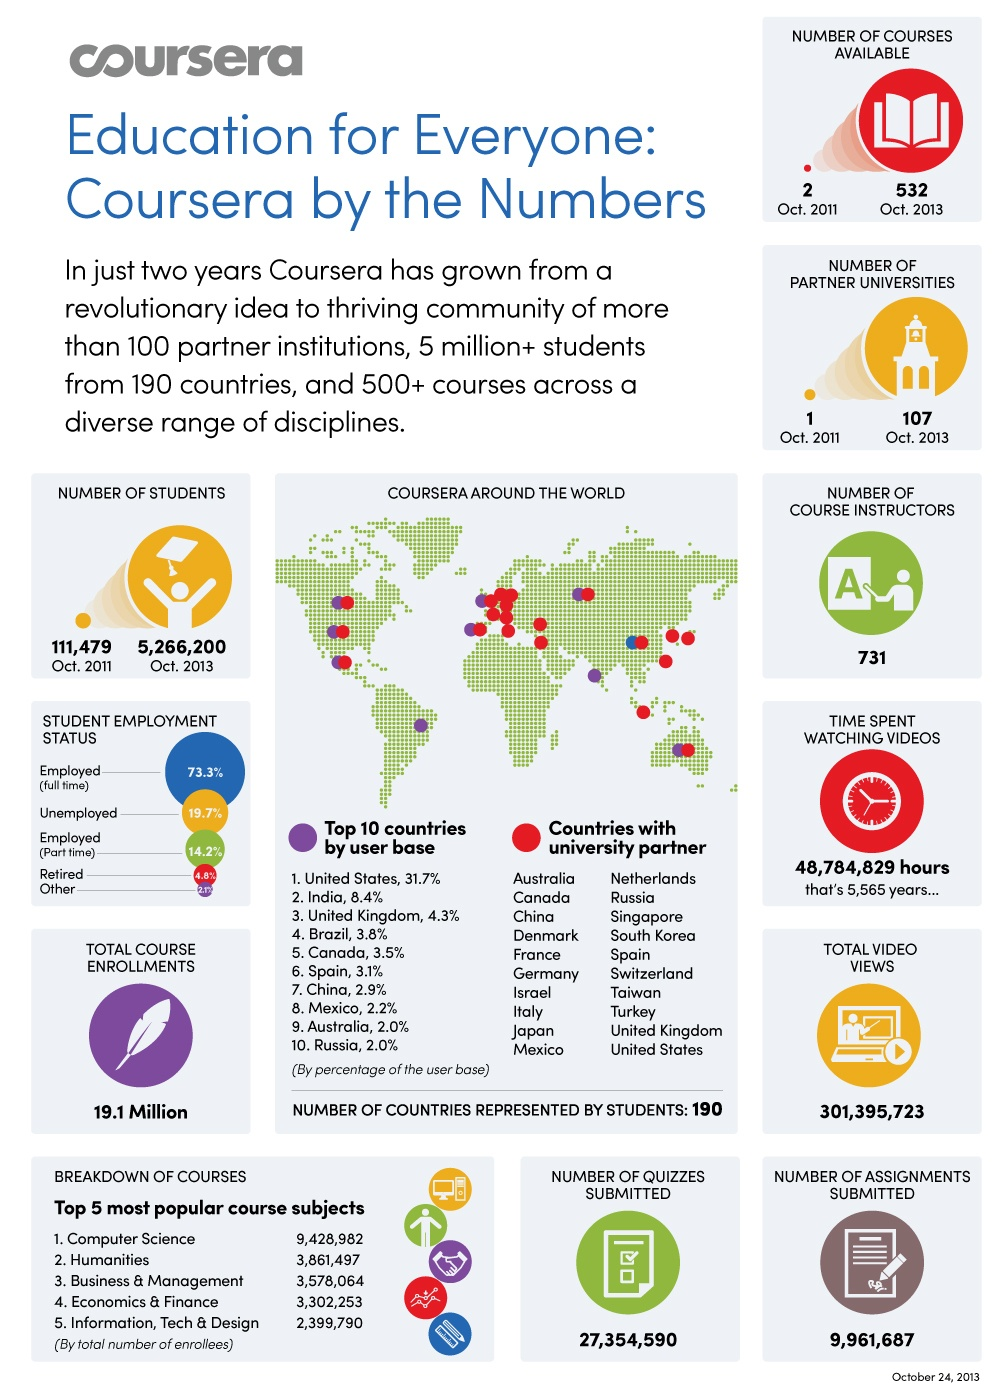 The Growth of Coursera Infographic